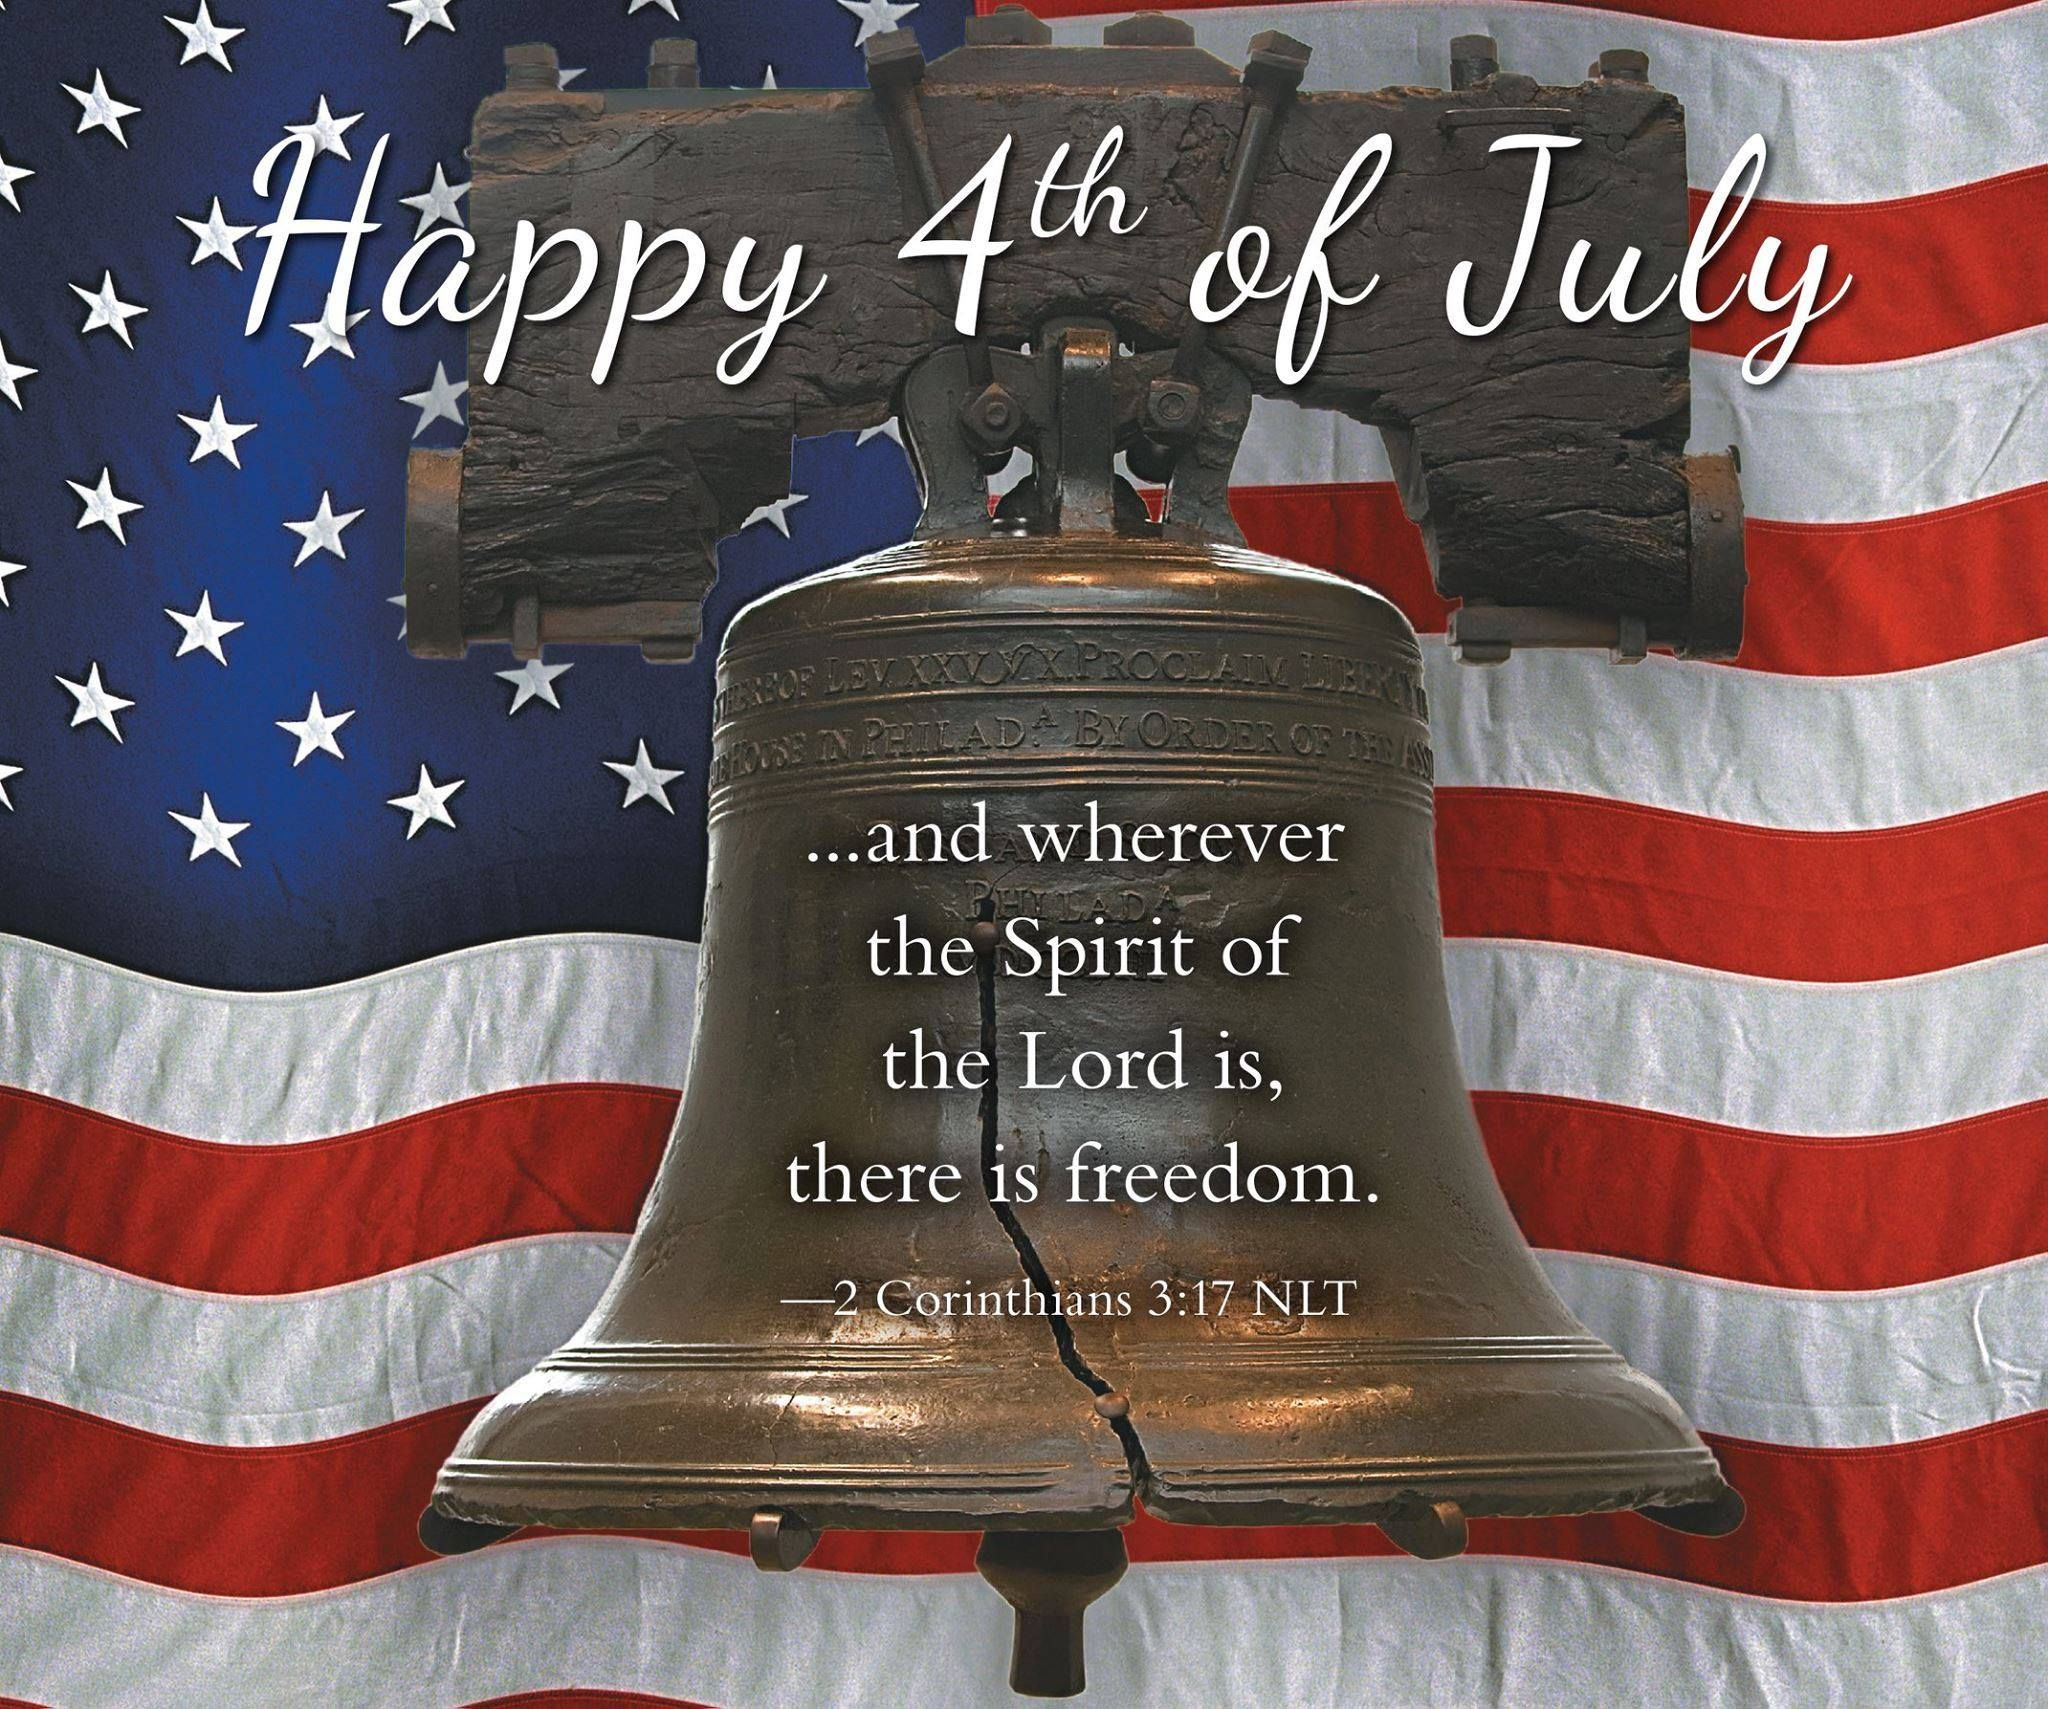 Religious Happy 4th Of Jul Quote Pictures, Photos, and Images for Facebook,  Tumblr, Pinterest, and Twitter